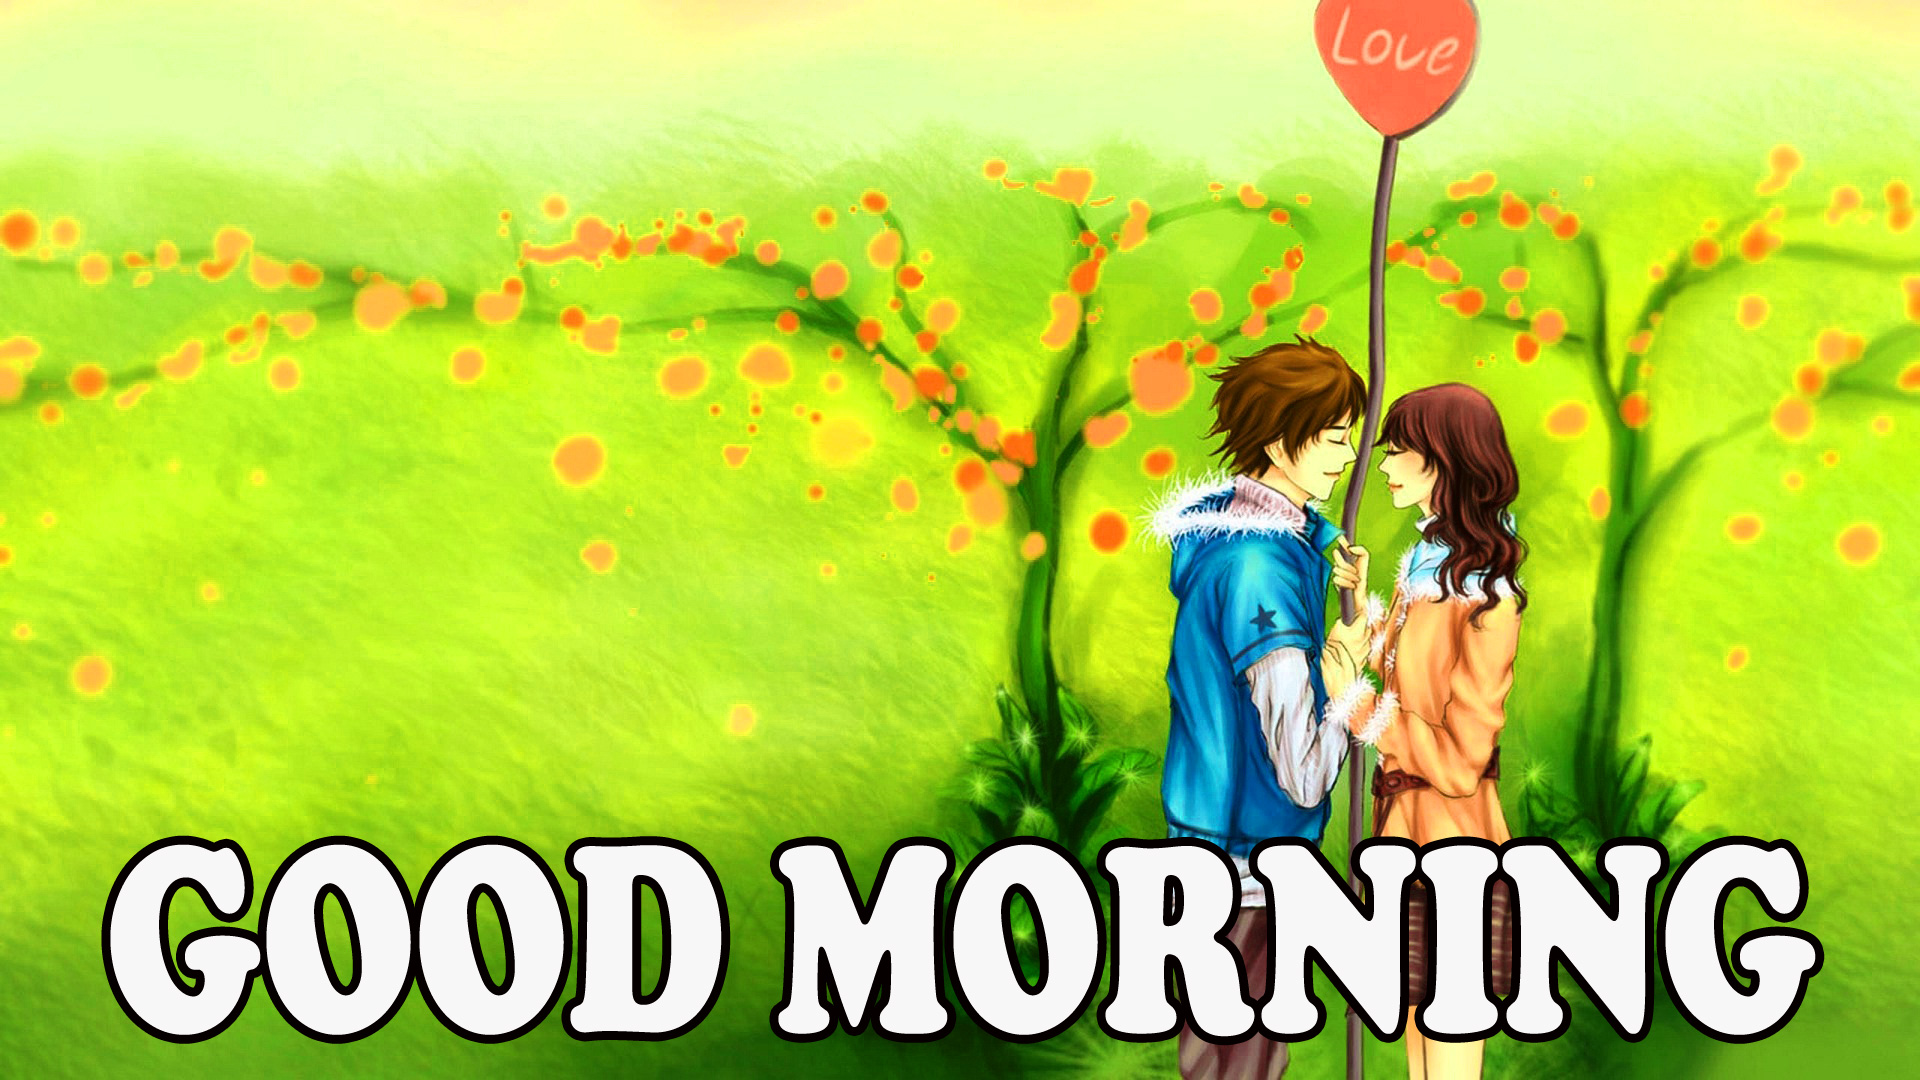 Good morning Images Wallpaper Pictures HD Download